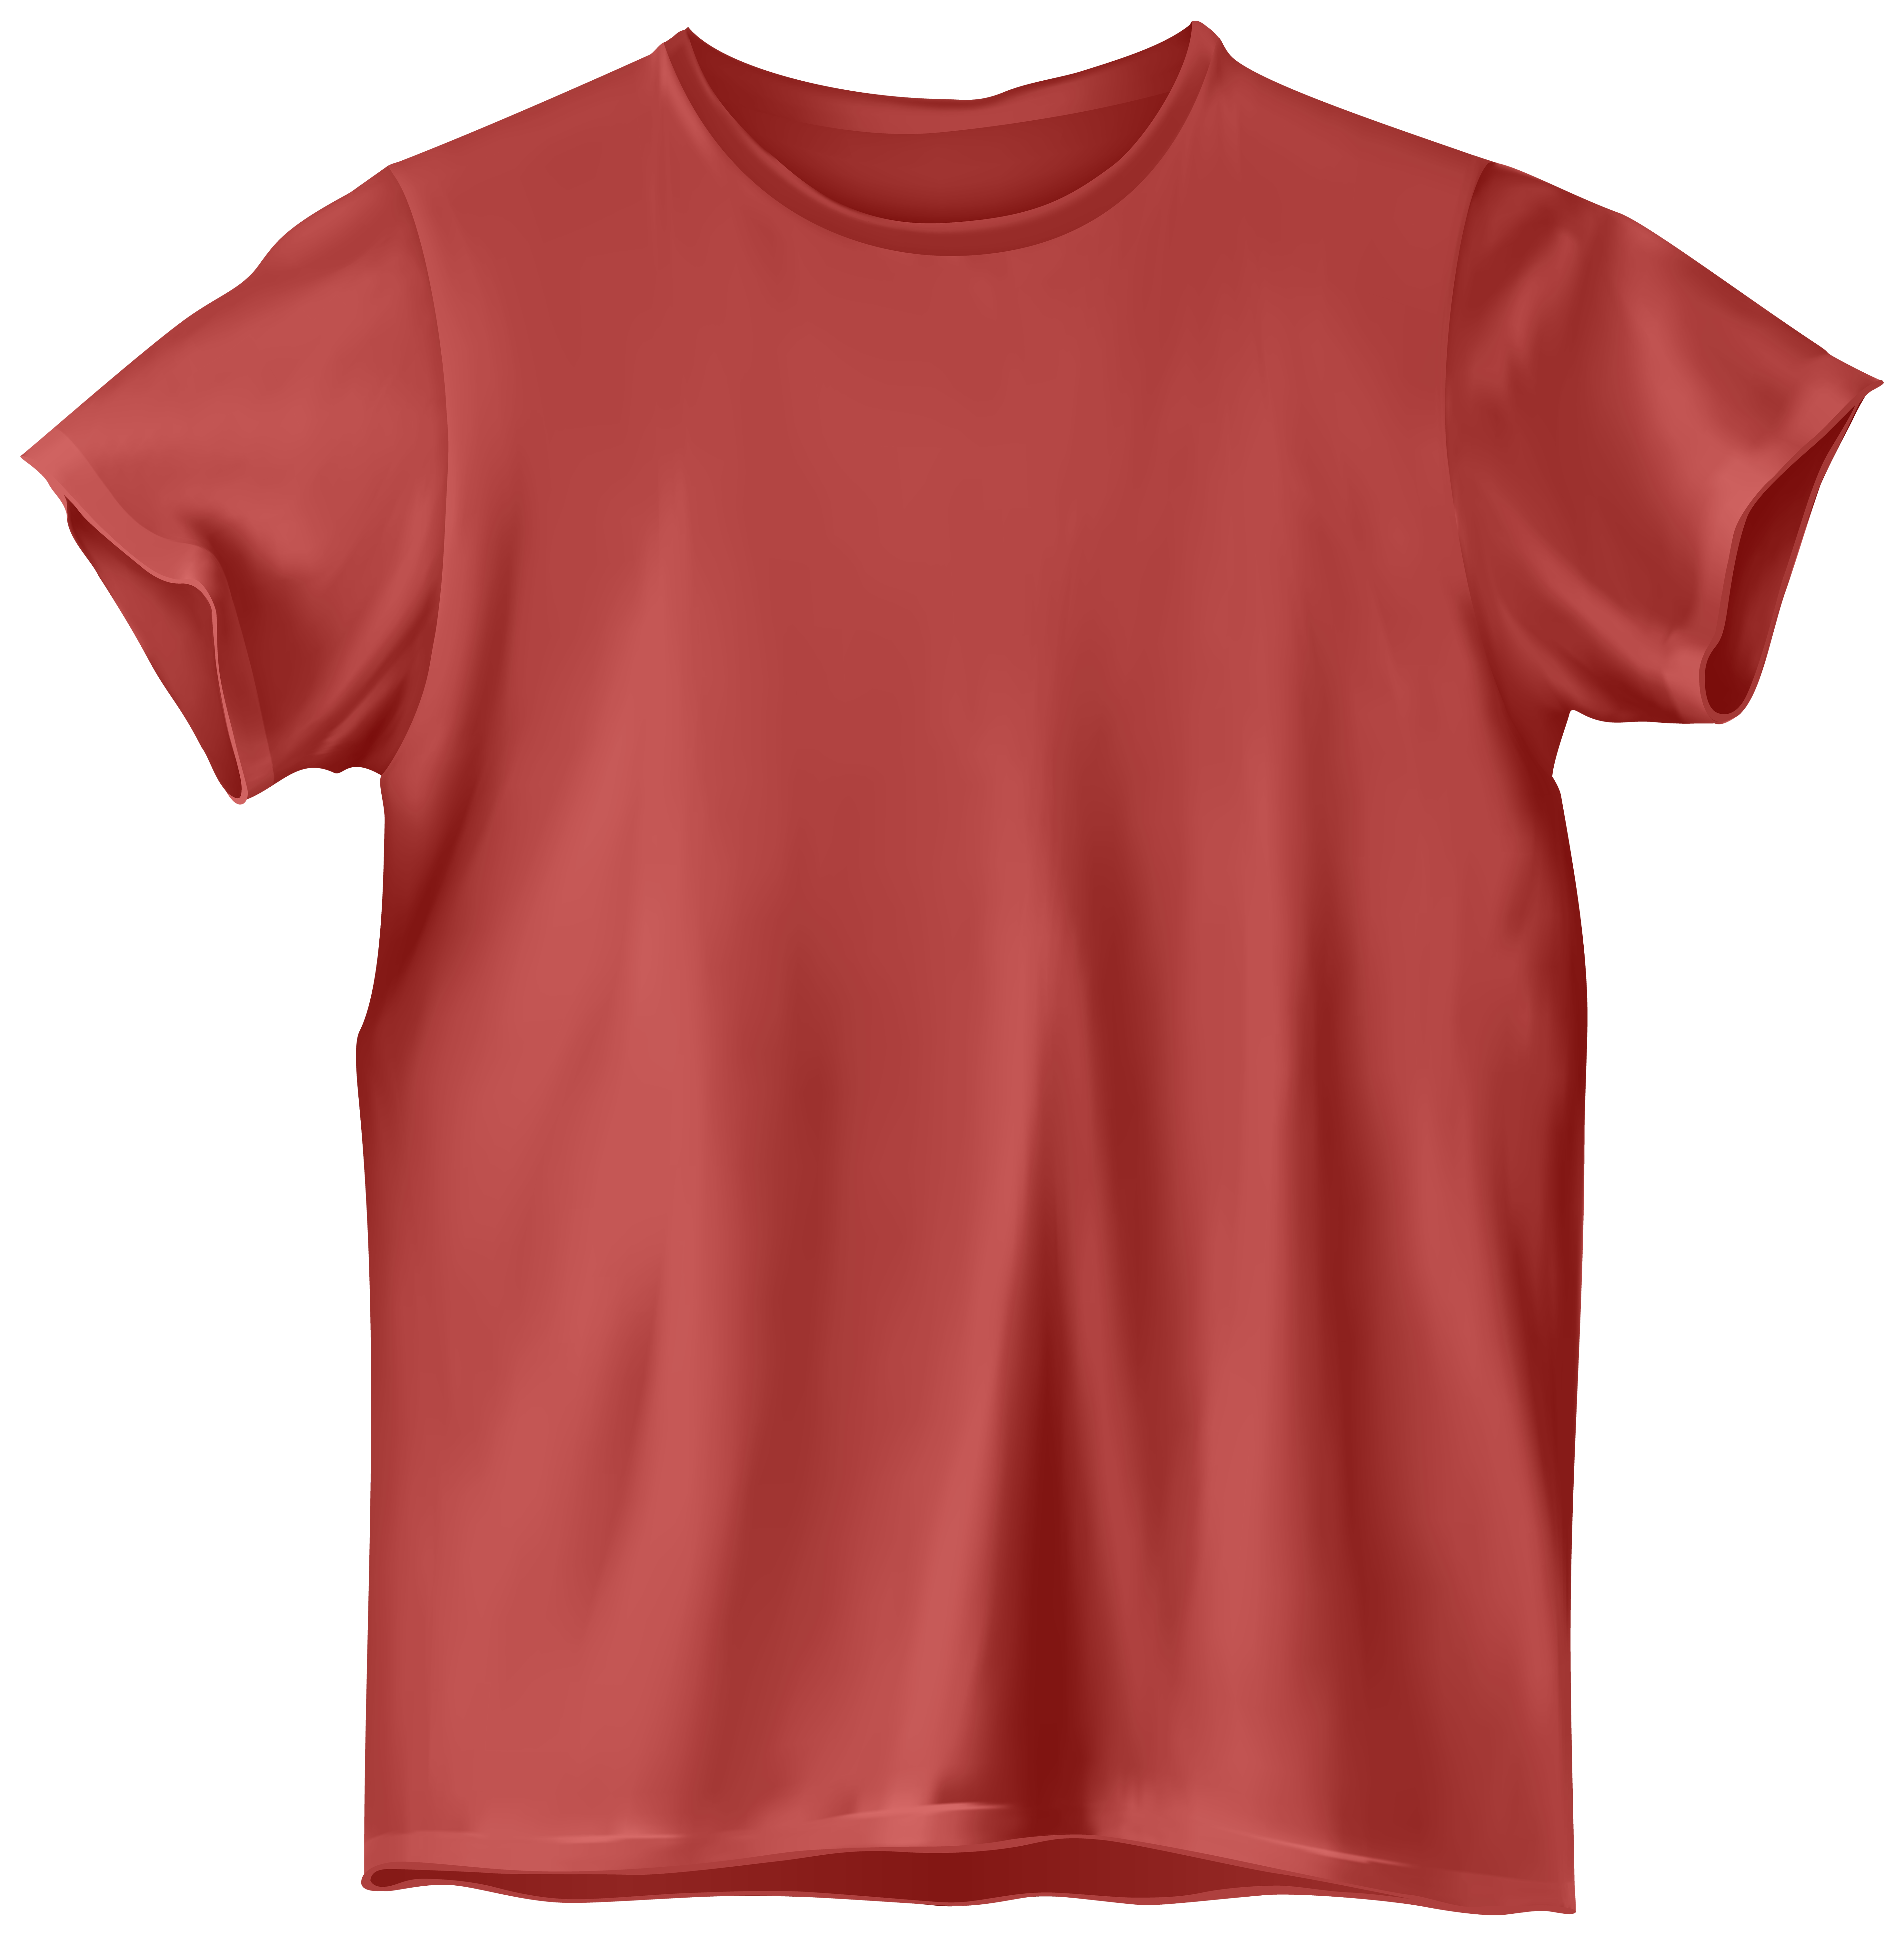 Red T Shirt Png & Free Red T Shirt.png Transparent Images ...